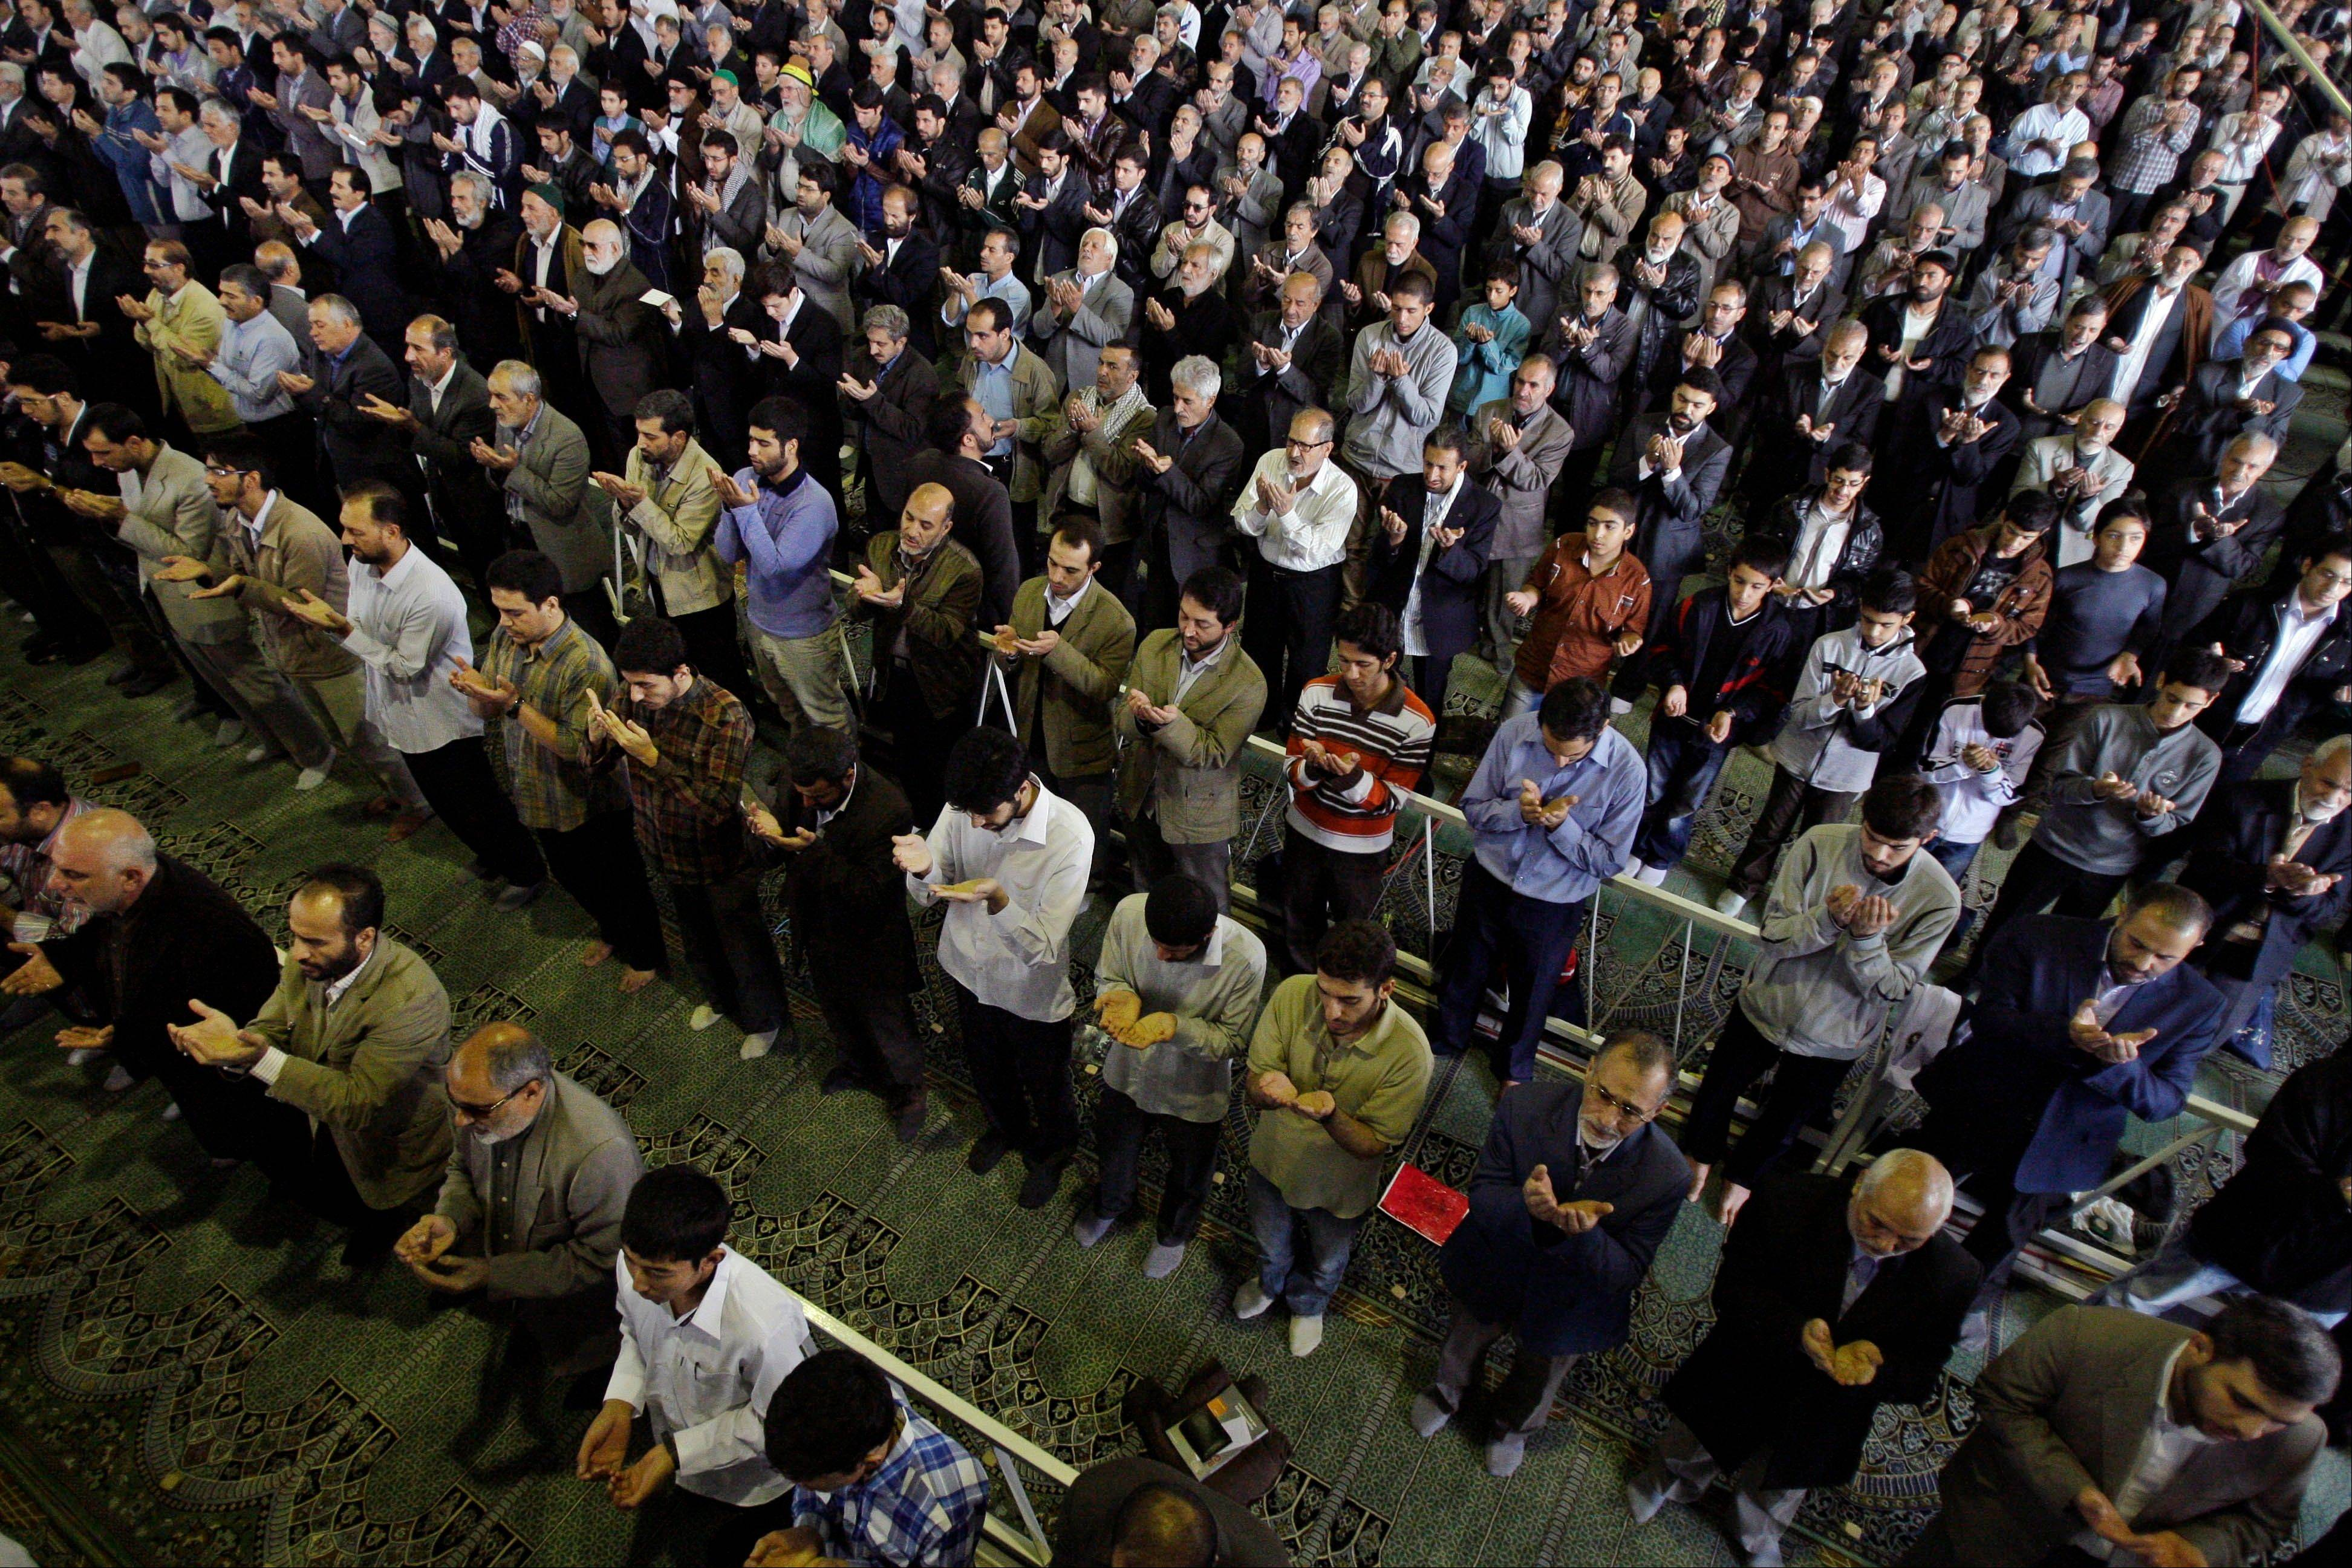 Iranian worshippers perform their Eid al-Adha prayers Friday at Tehran University campus in Tehran, Iran. Leaders in Iran are appealing to Iranians sense of nationalism in an effort to encourage them to purchase domestic products.